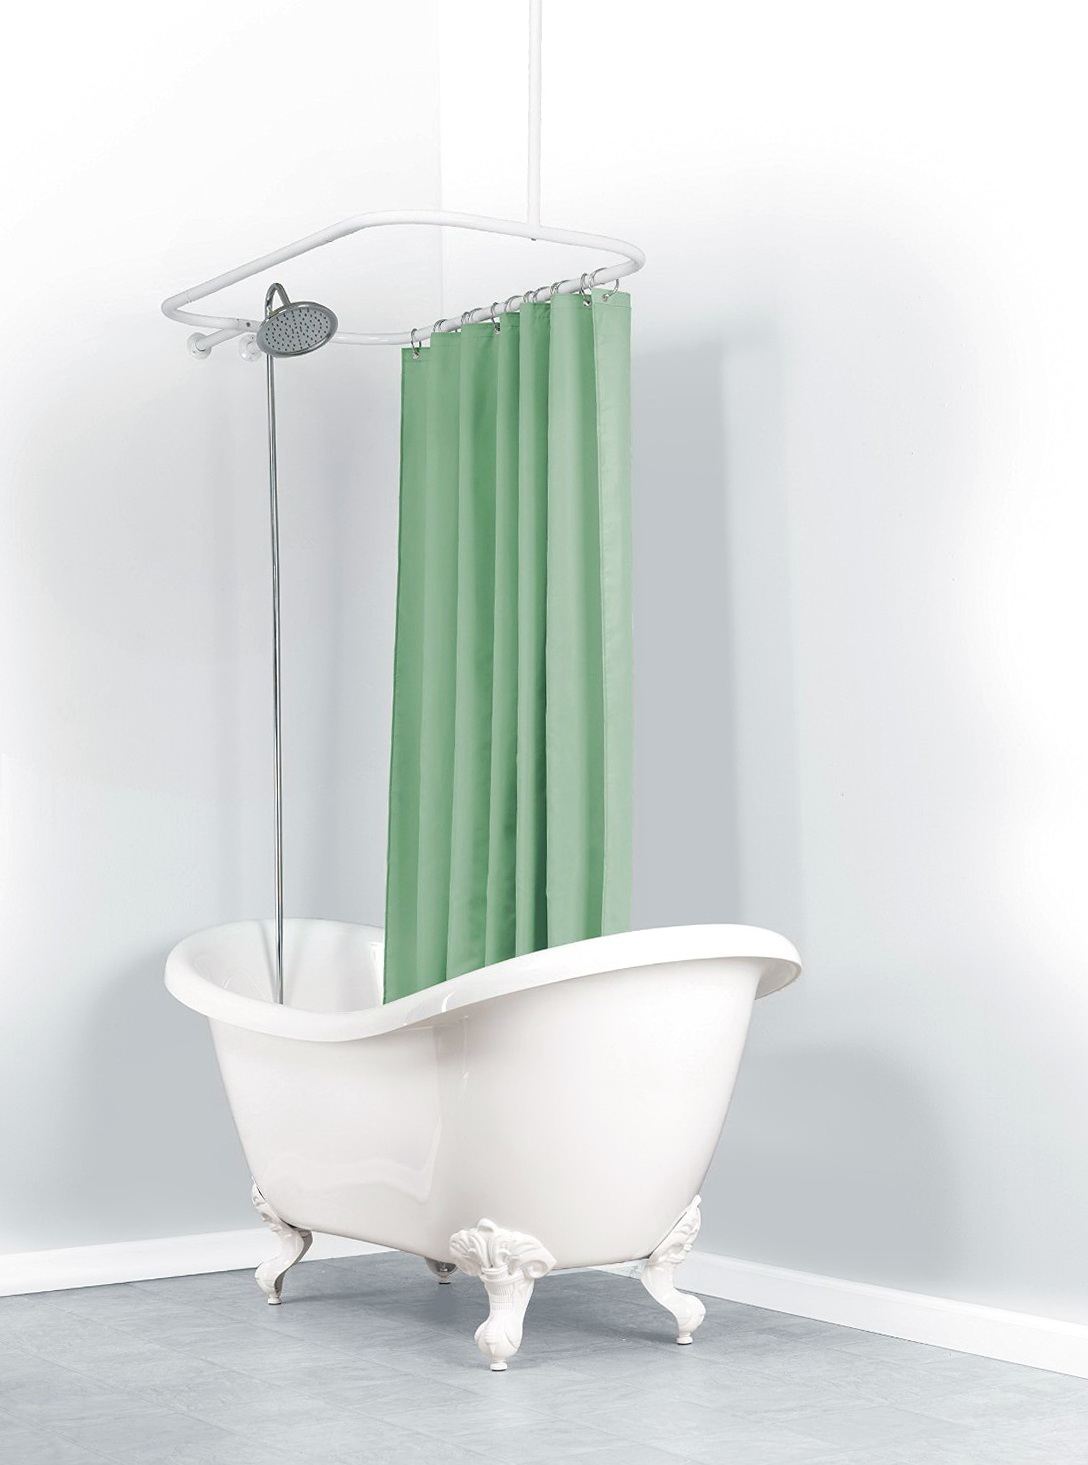 Ceiling Mount Shower Curtain Rod Clawfoot Tub Home